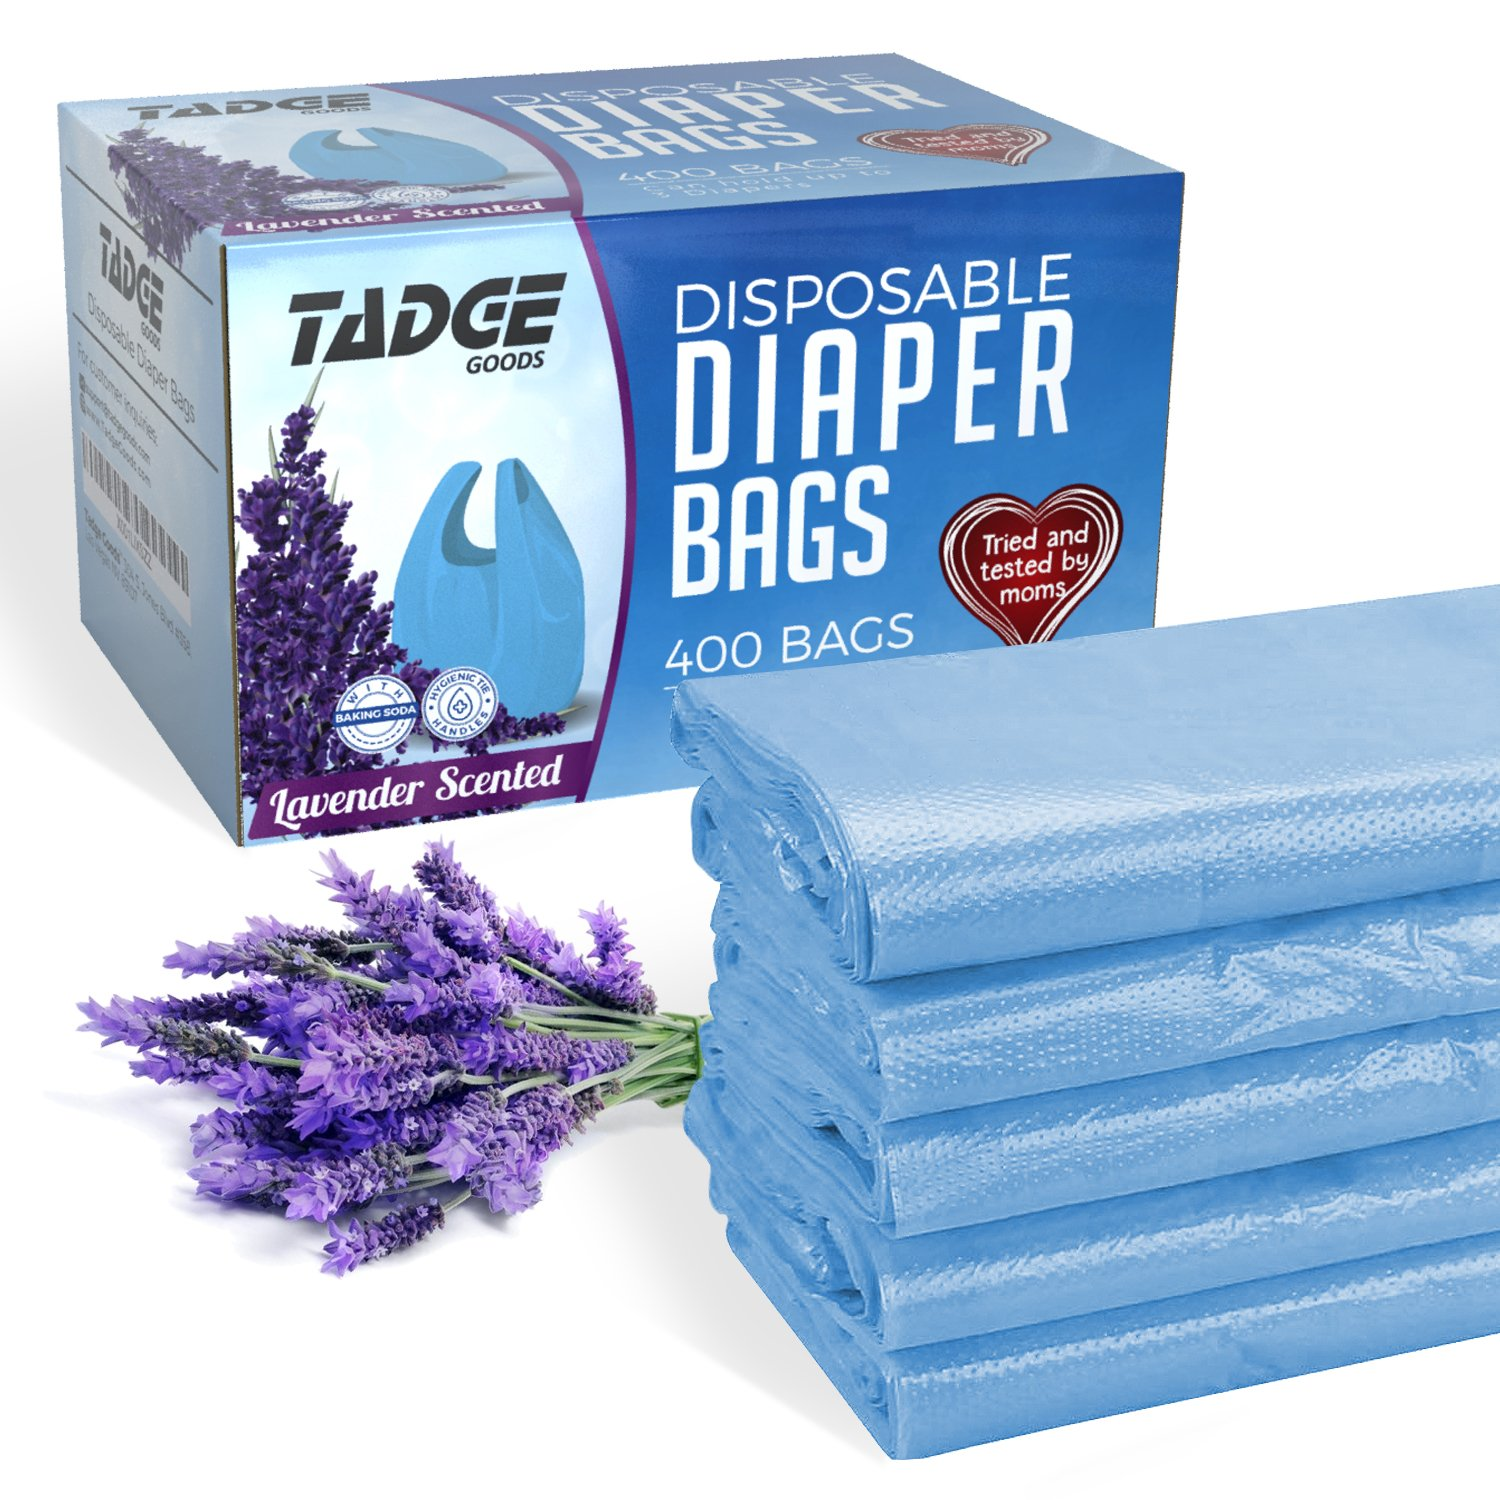 Tadge Goods Baby Disposable Diaper